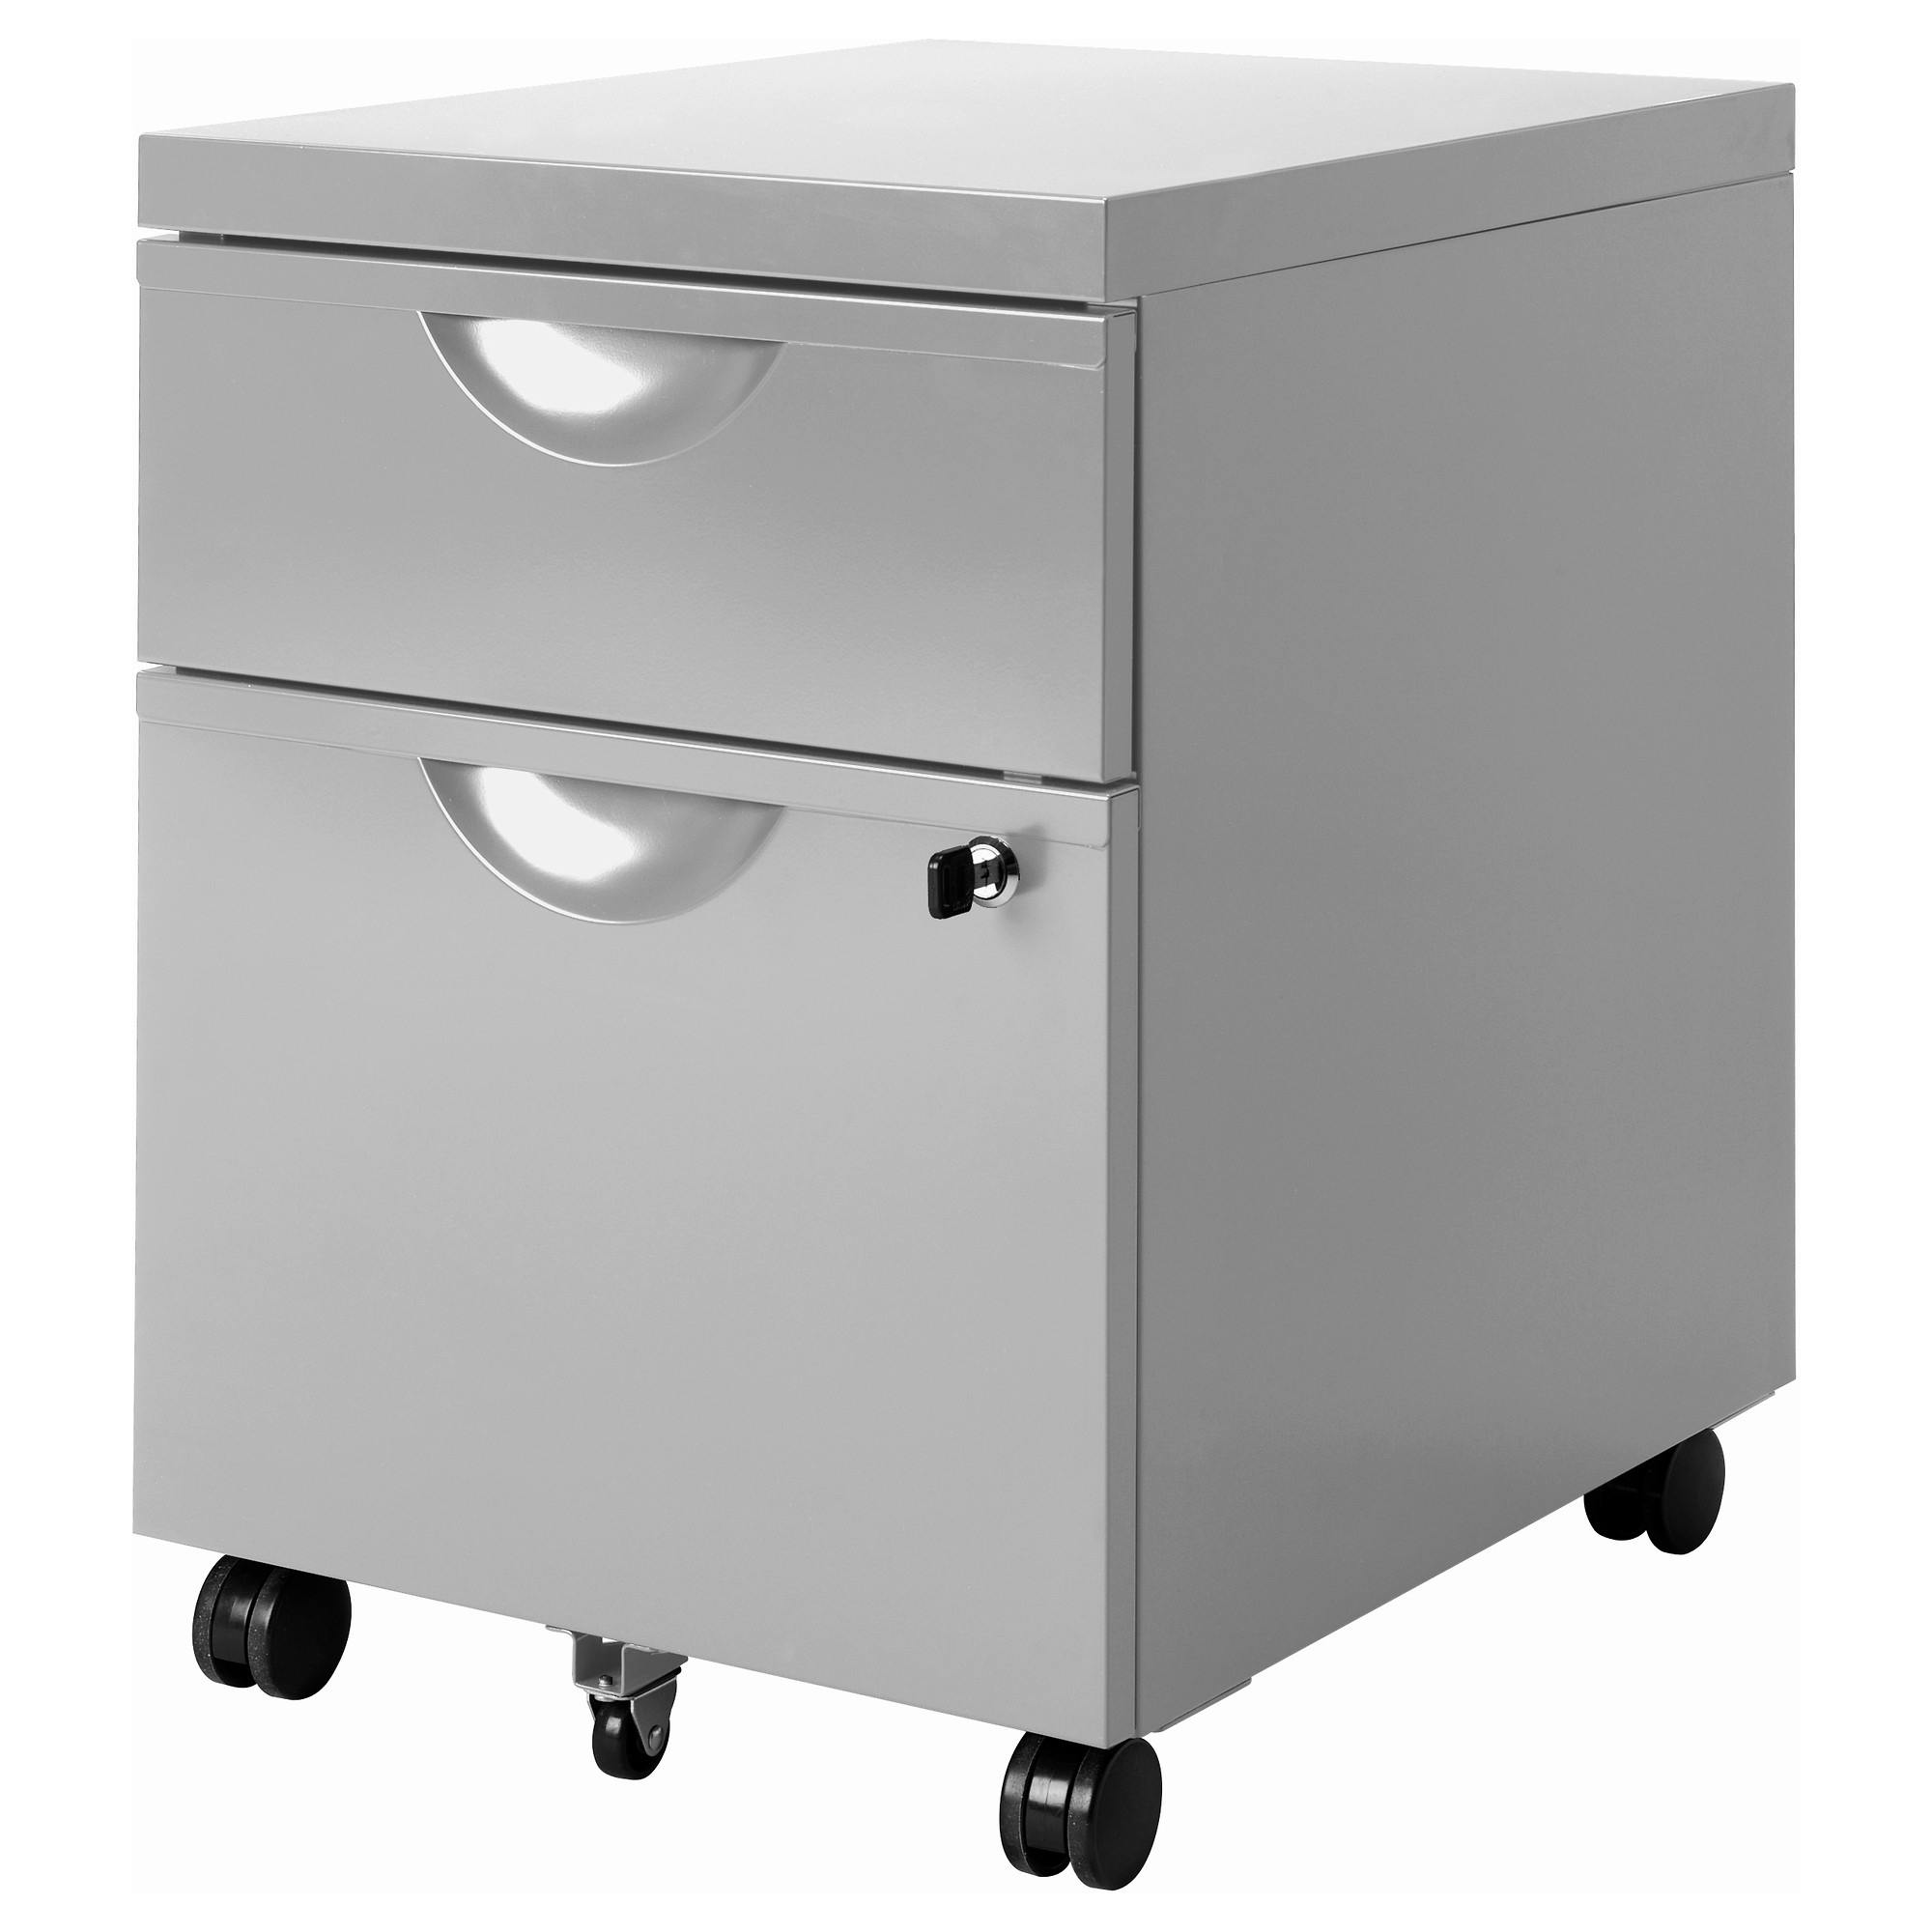 erik drawer unit w 2 drawers on casters silver color width 16 1 anew office ikea storage